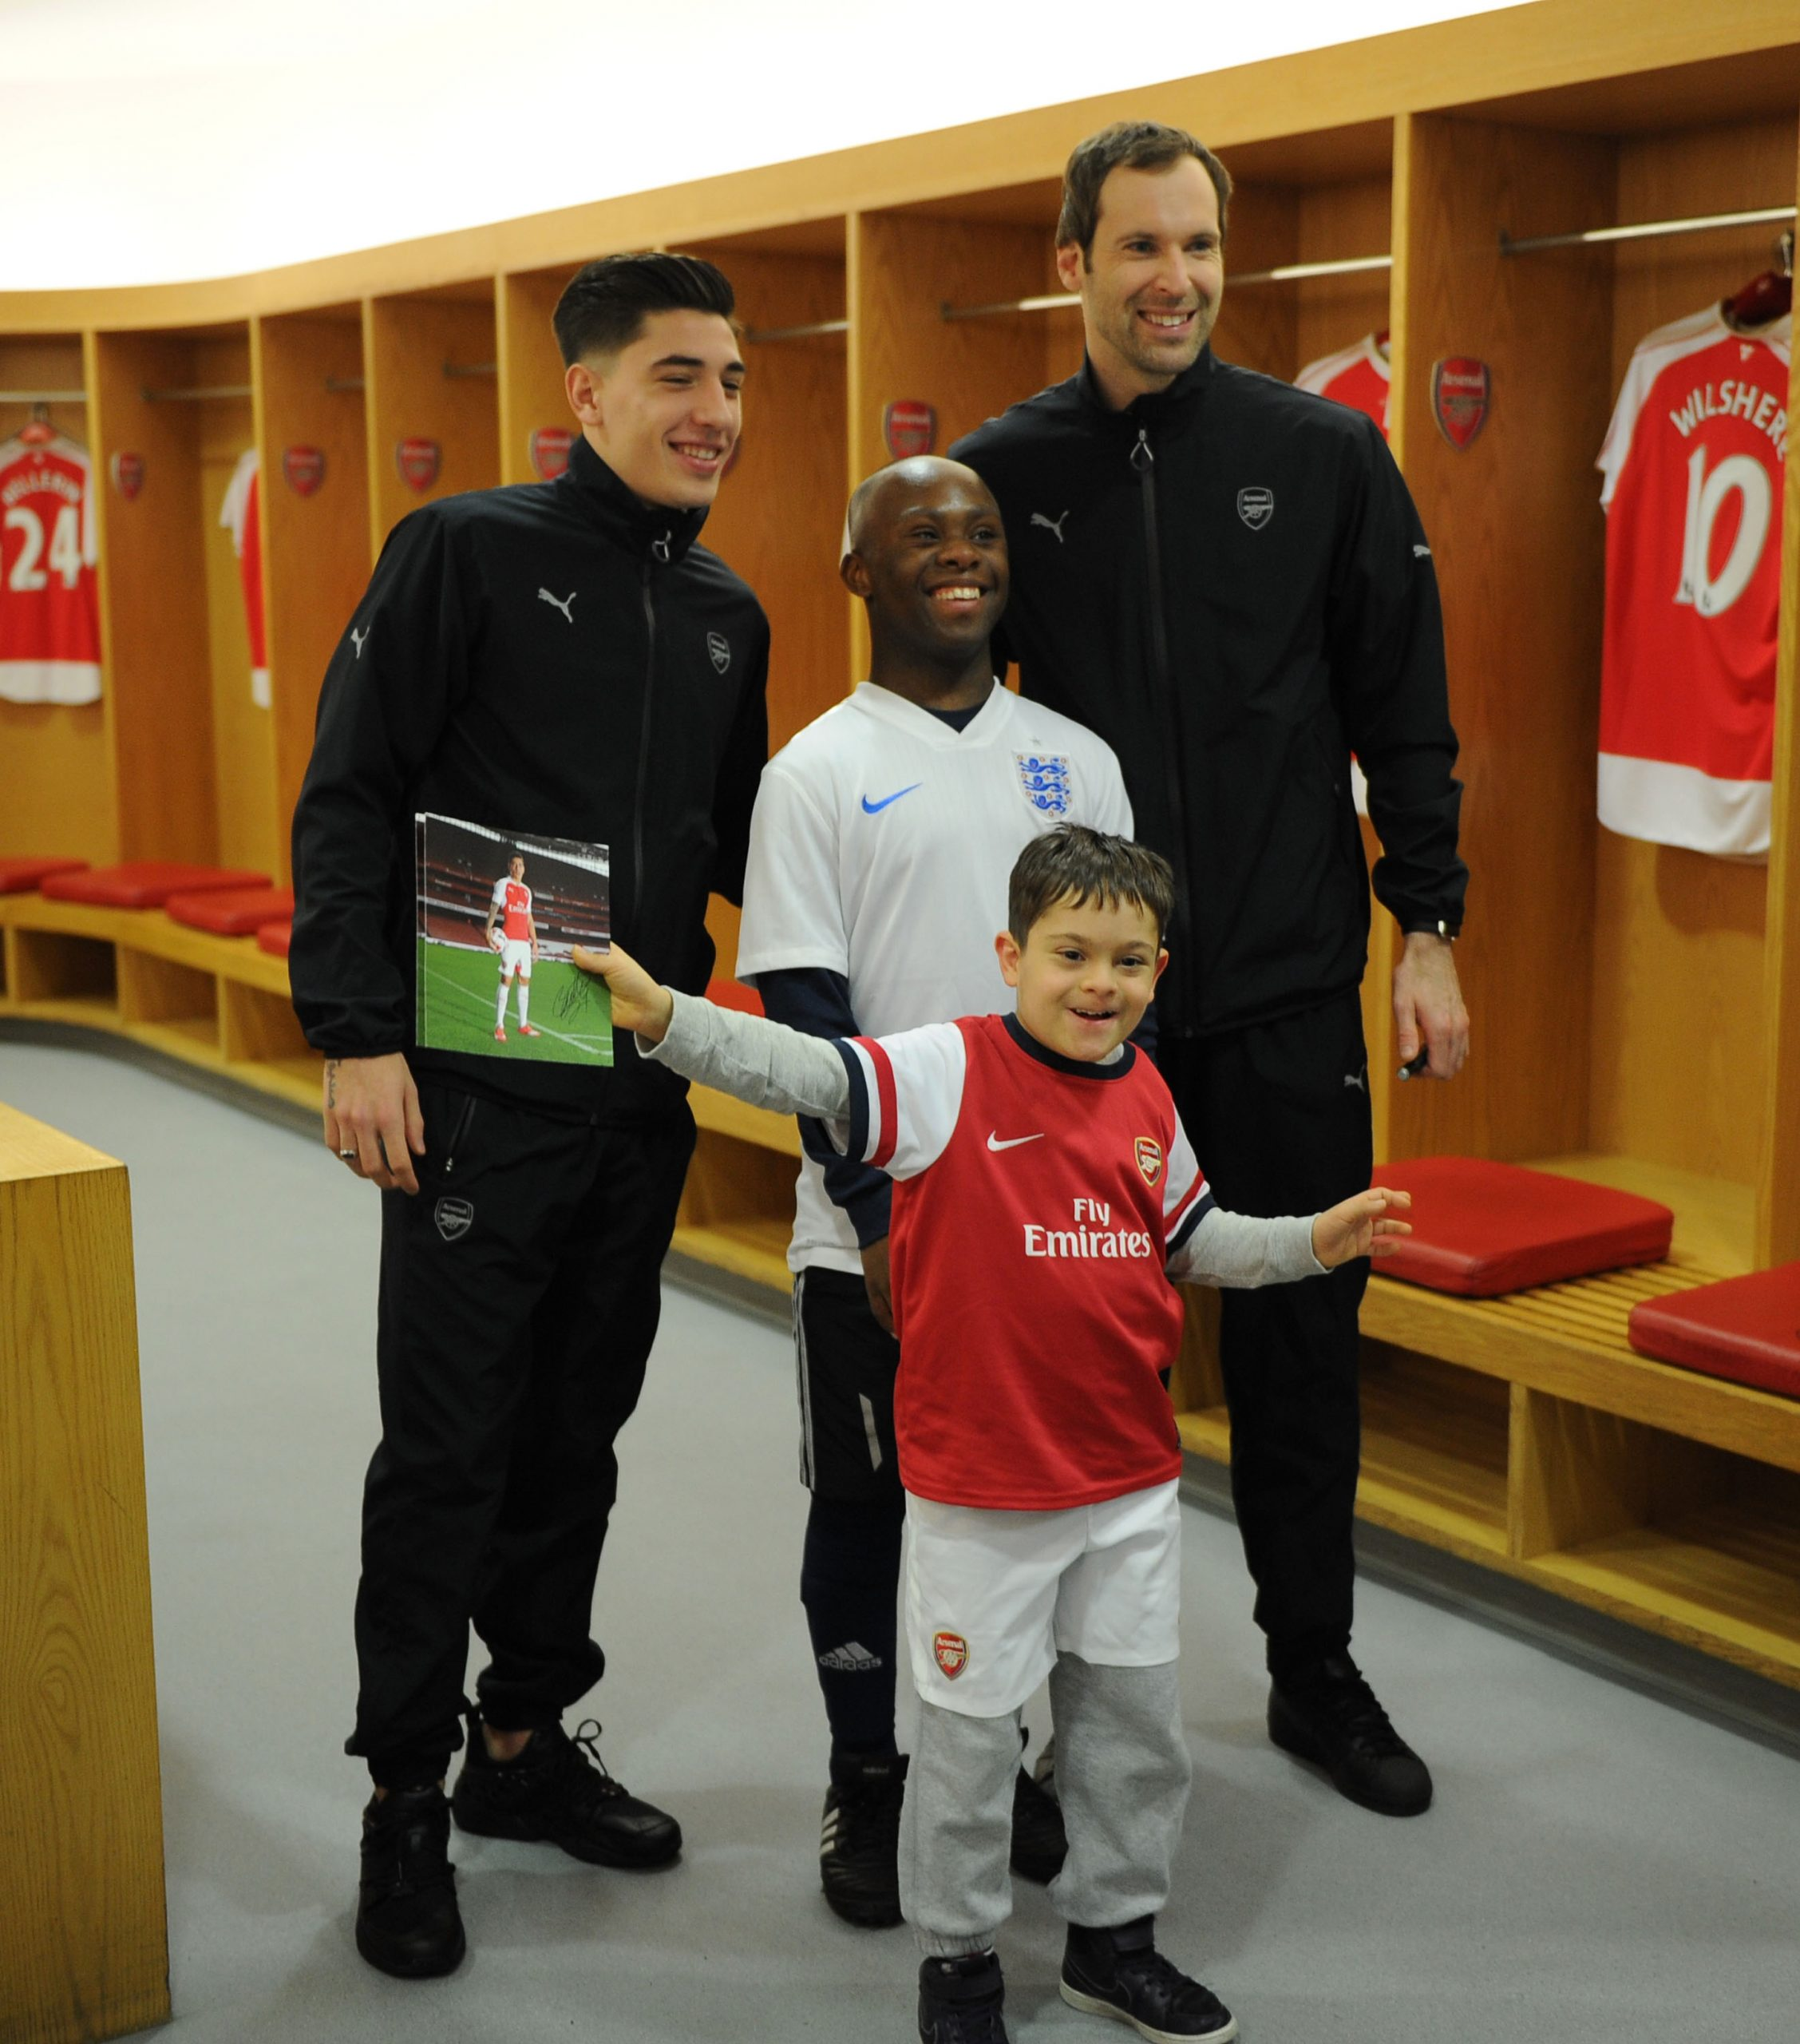 Arsenal FC's Hector and Petr surprise community group